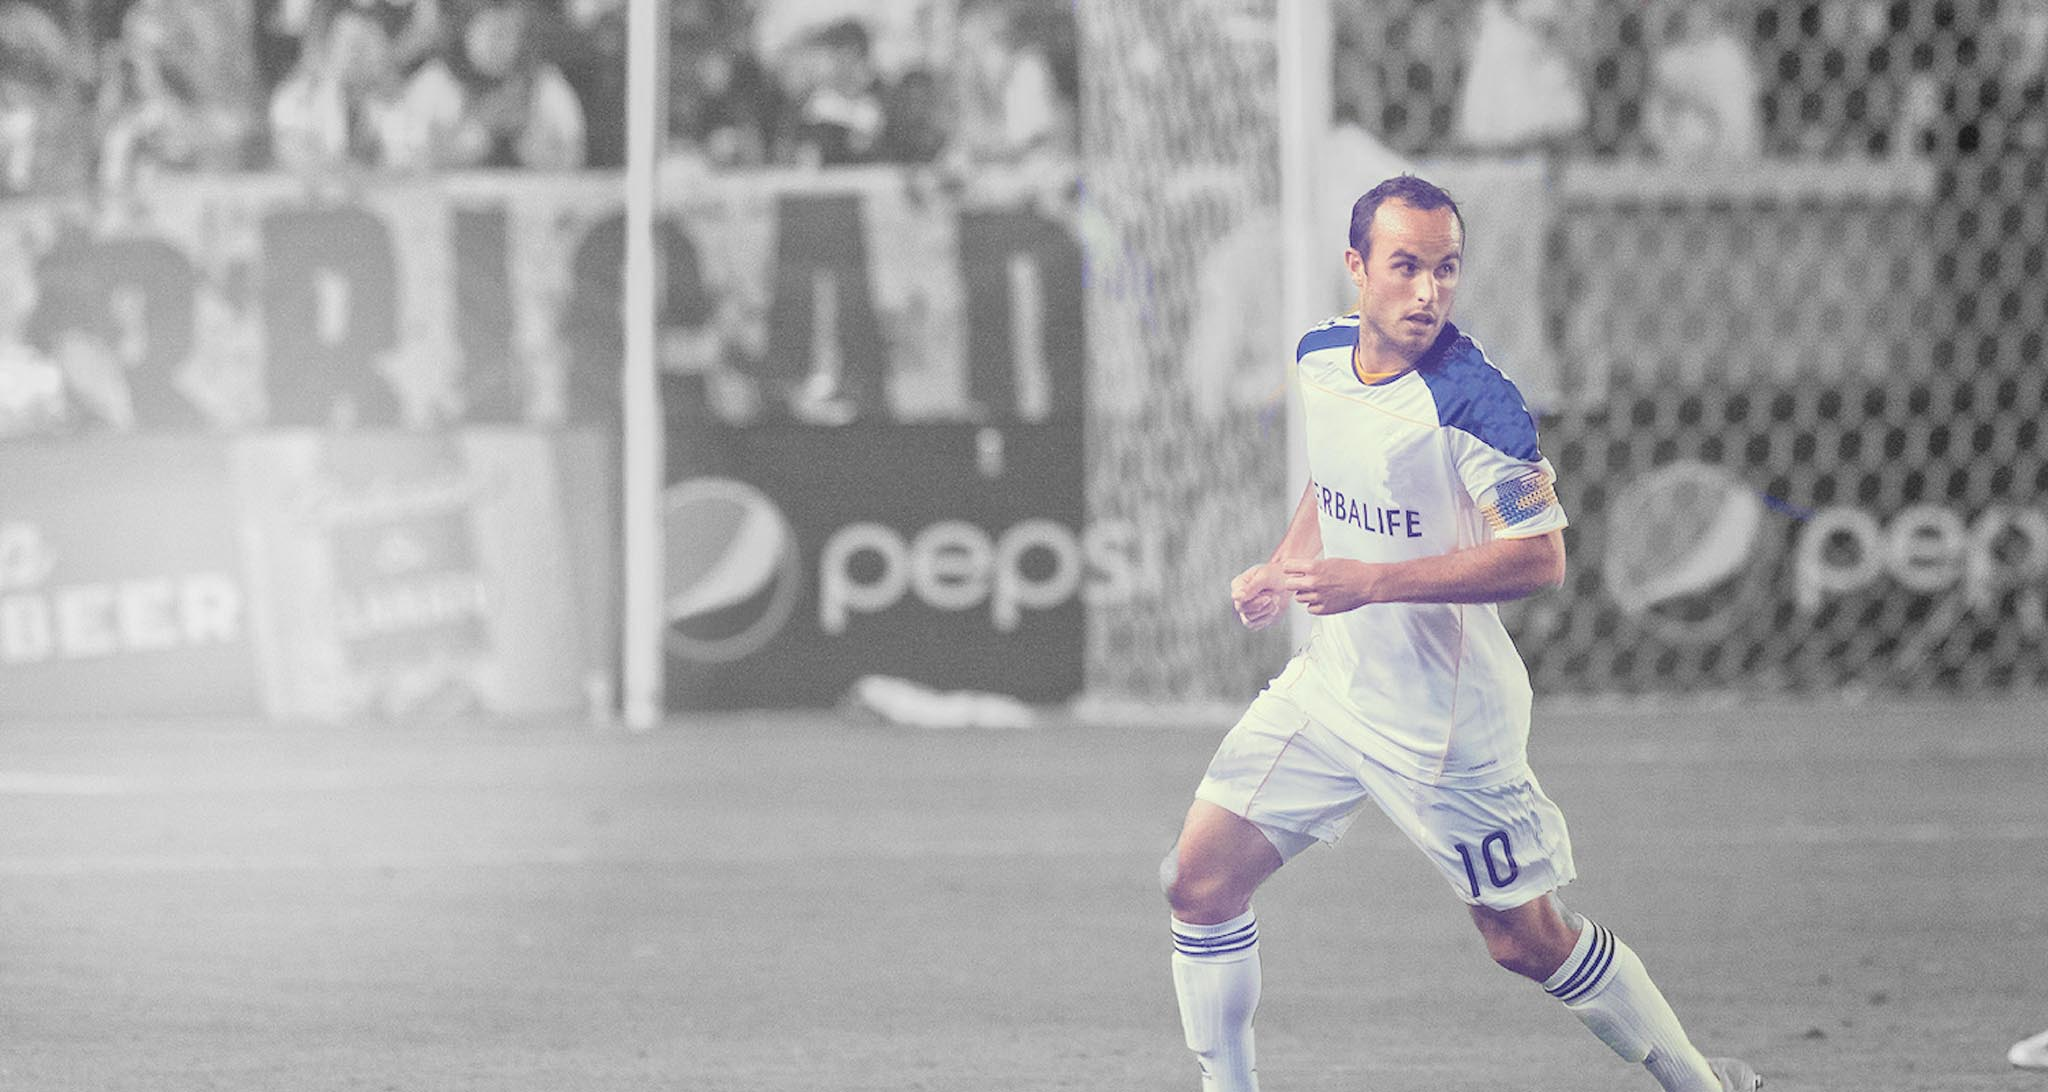 Landon-Donovan-Training-Slider-BLANK-BW